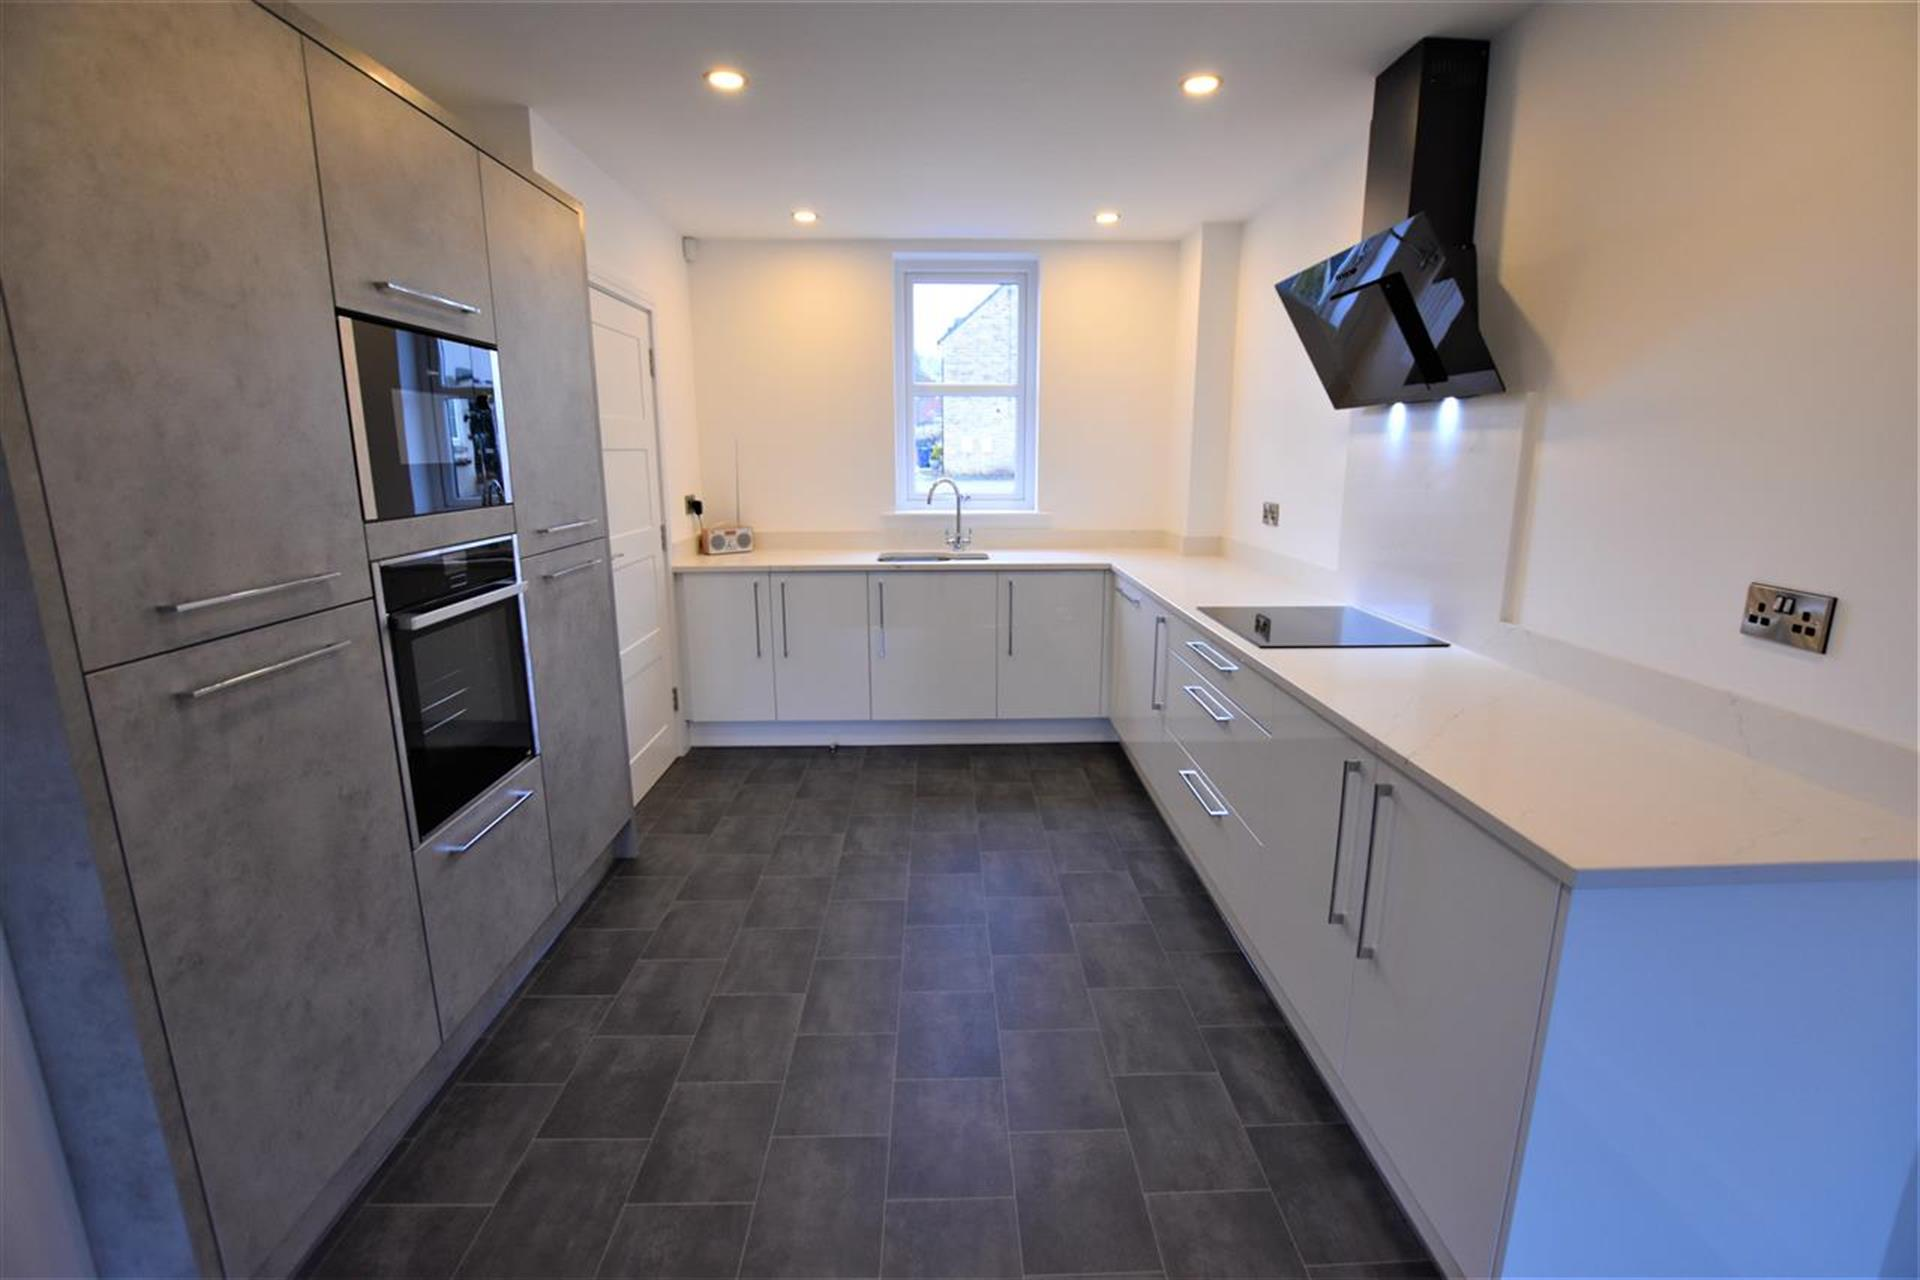 3 Bedroom House For Sale - Kitchen